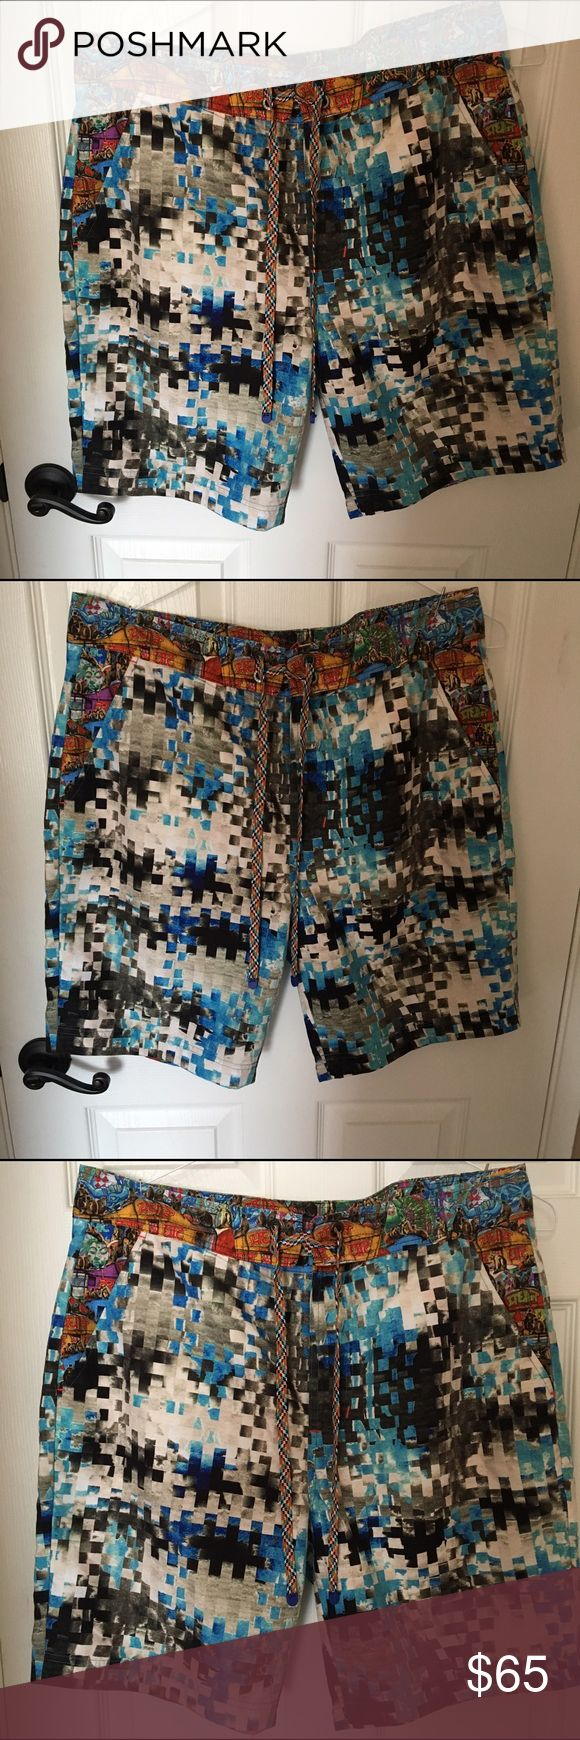 Robert Graham men's bathing suit size 36 Robert Graham men's bathing suit in perfect condition. Worn once and hand washed. Signature RG styling and details. Fun pattern soft silky material. Size 36 but Run on the smaller size Robert Graham Shorts Hybrids